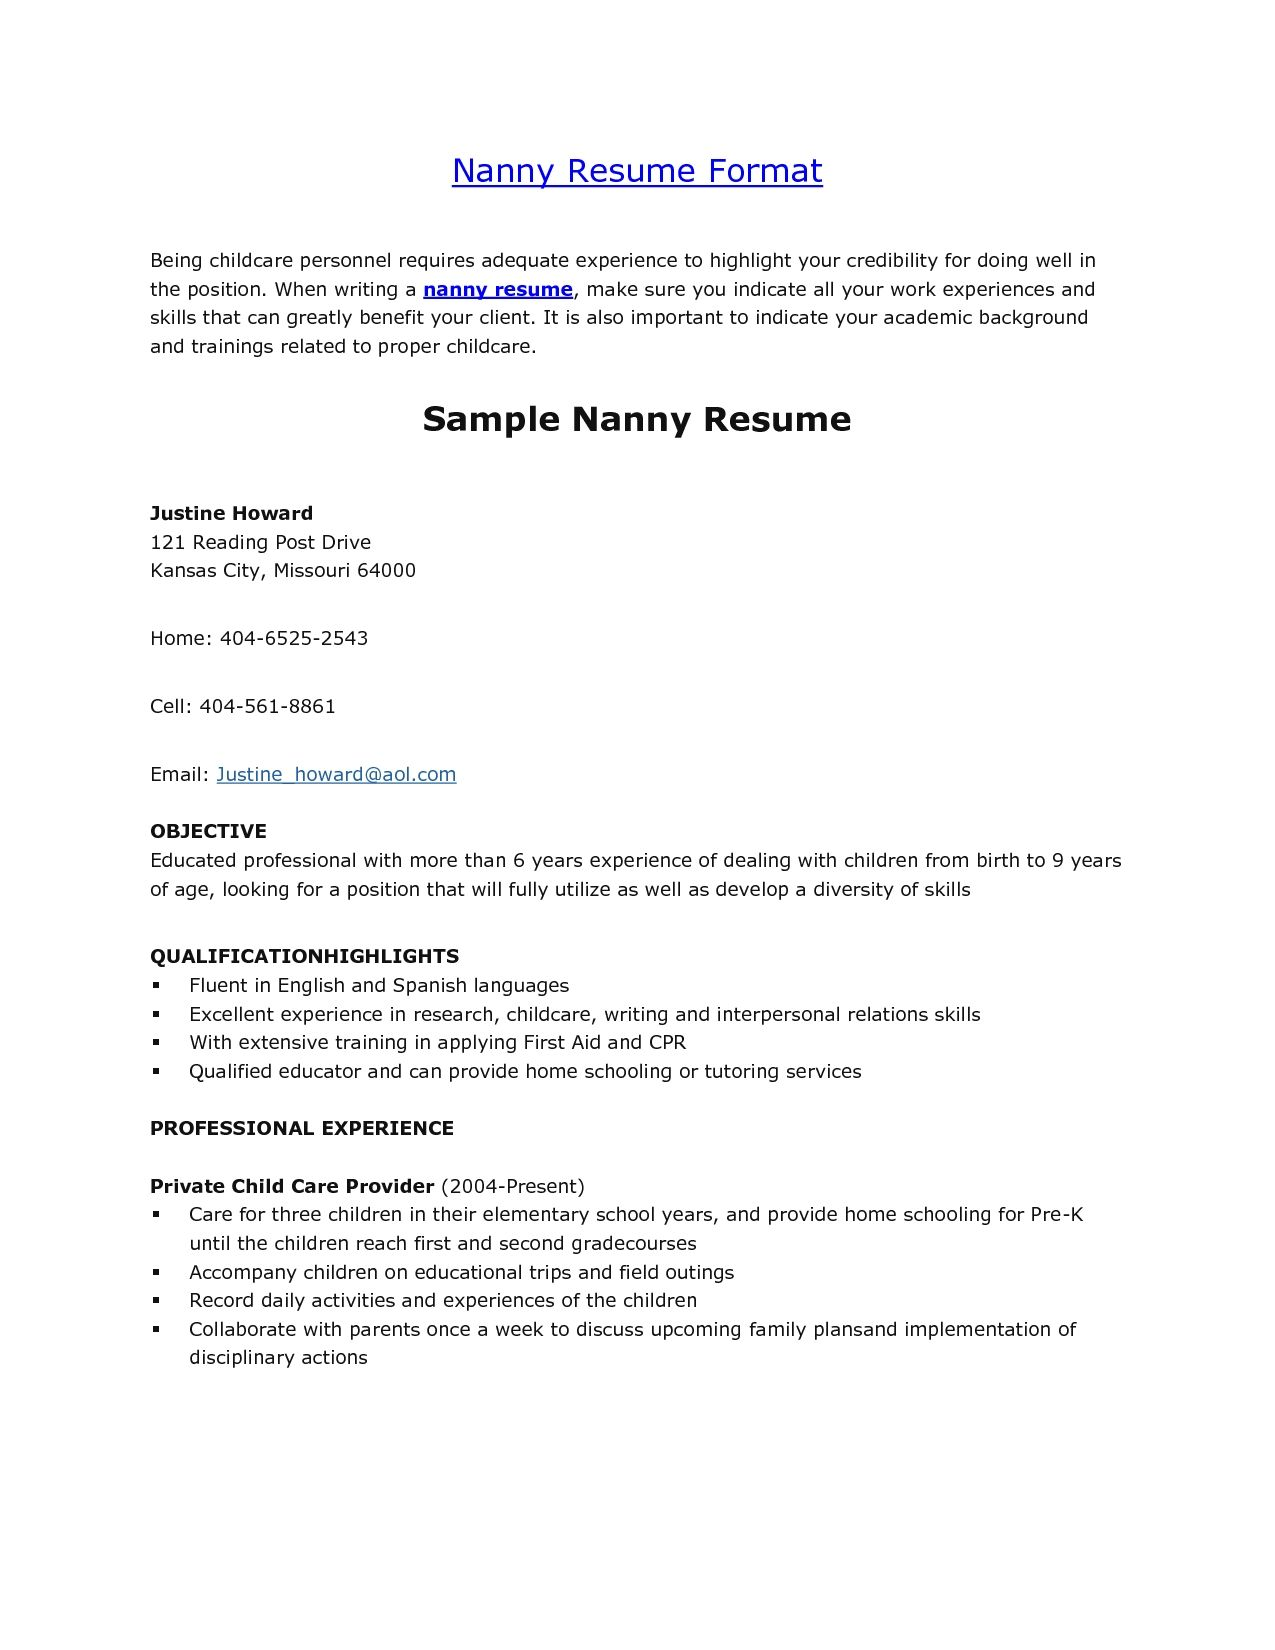 Resume Job Experience What To Put On A Cover Letter For Resumecompares Linux